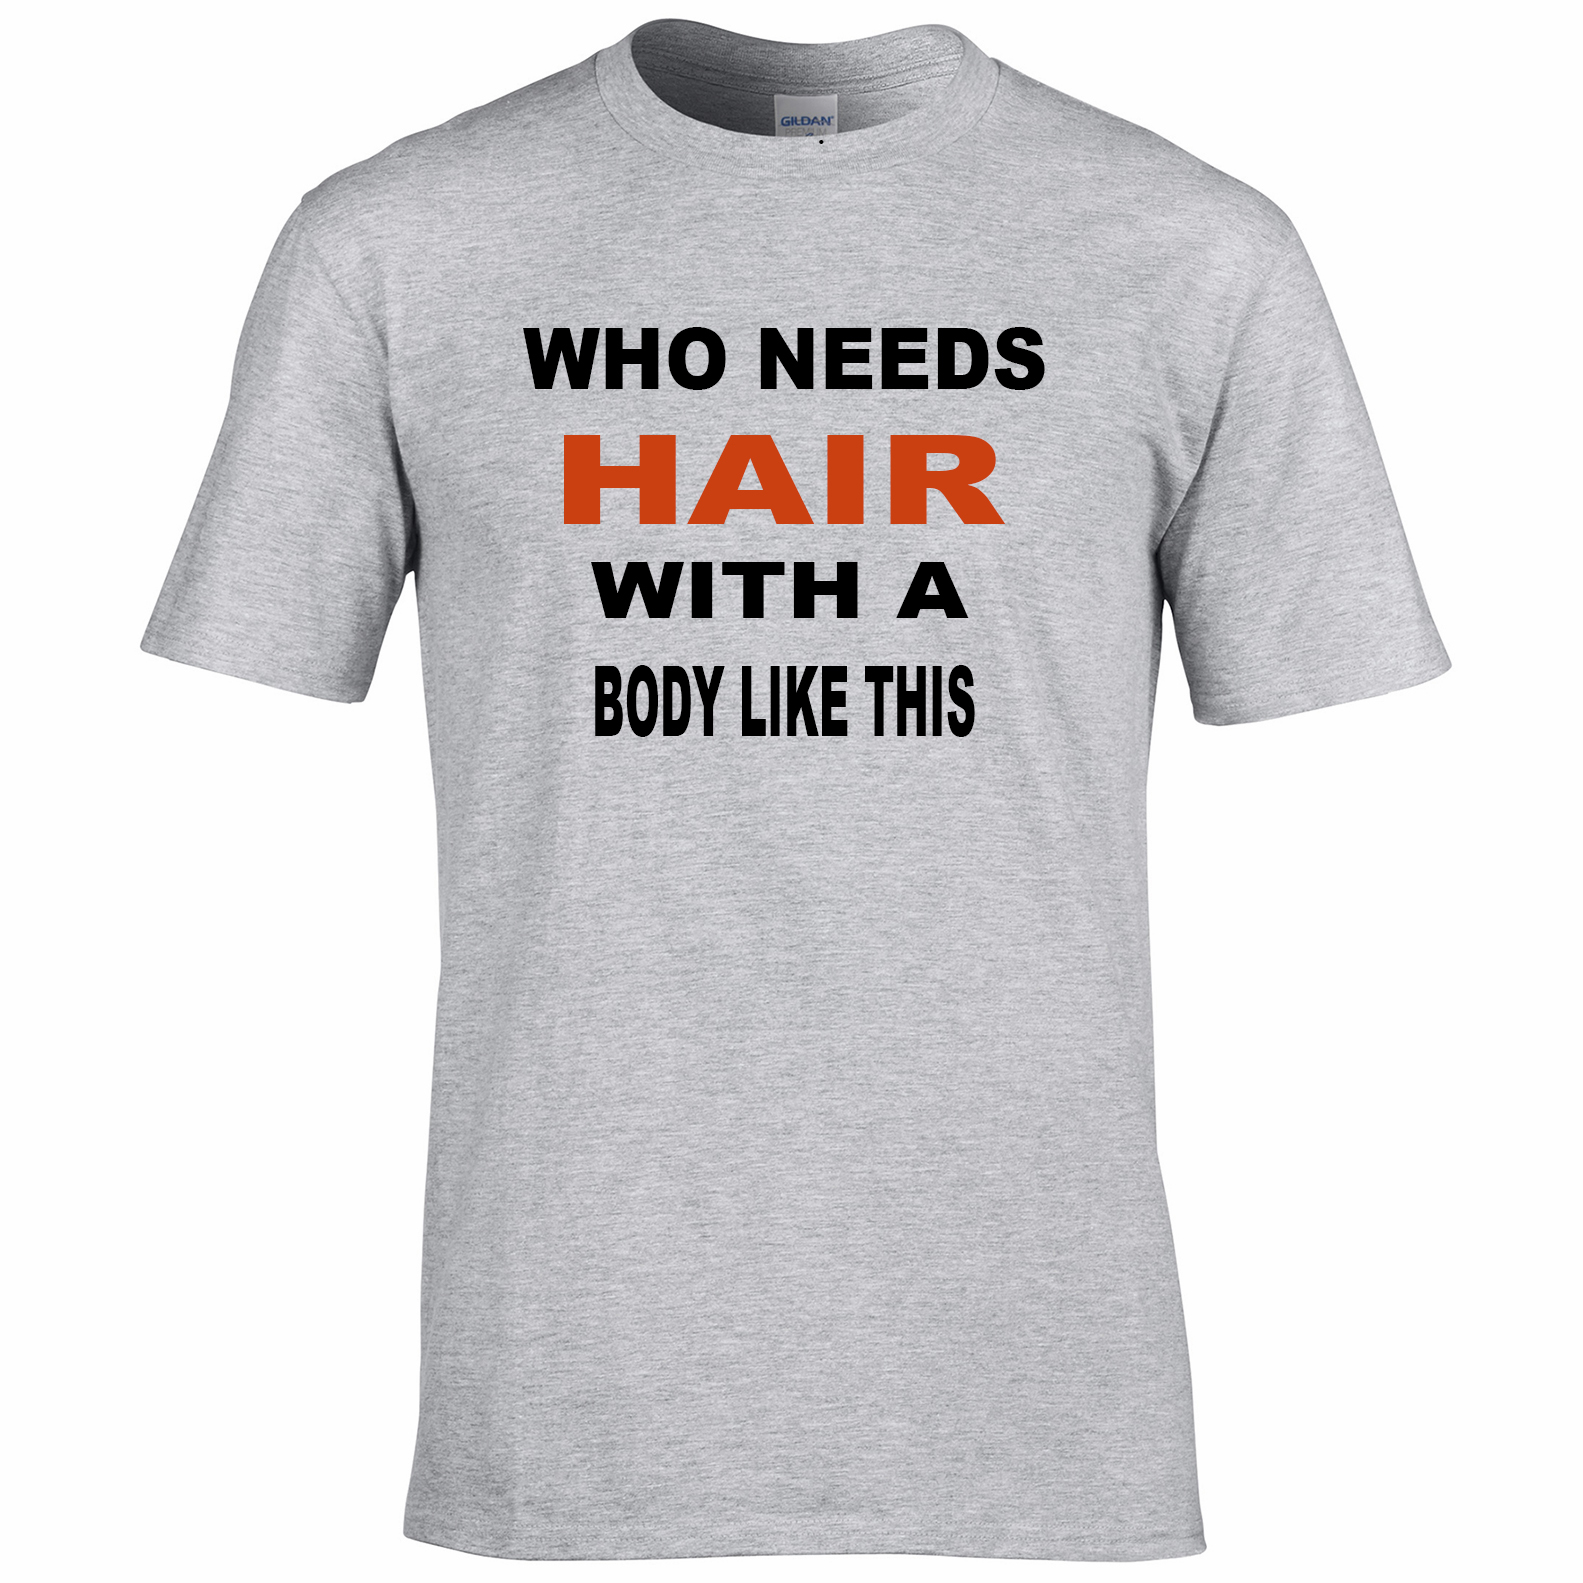 Funny Cool T Shirts | Is Shirt